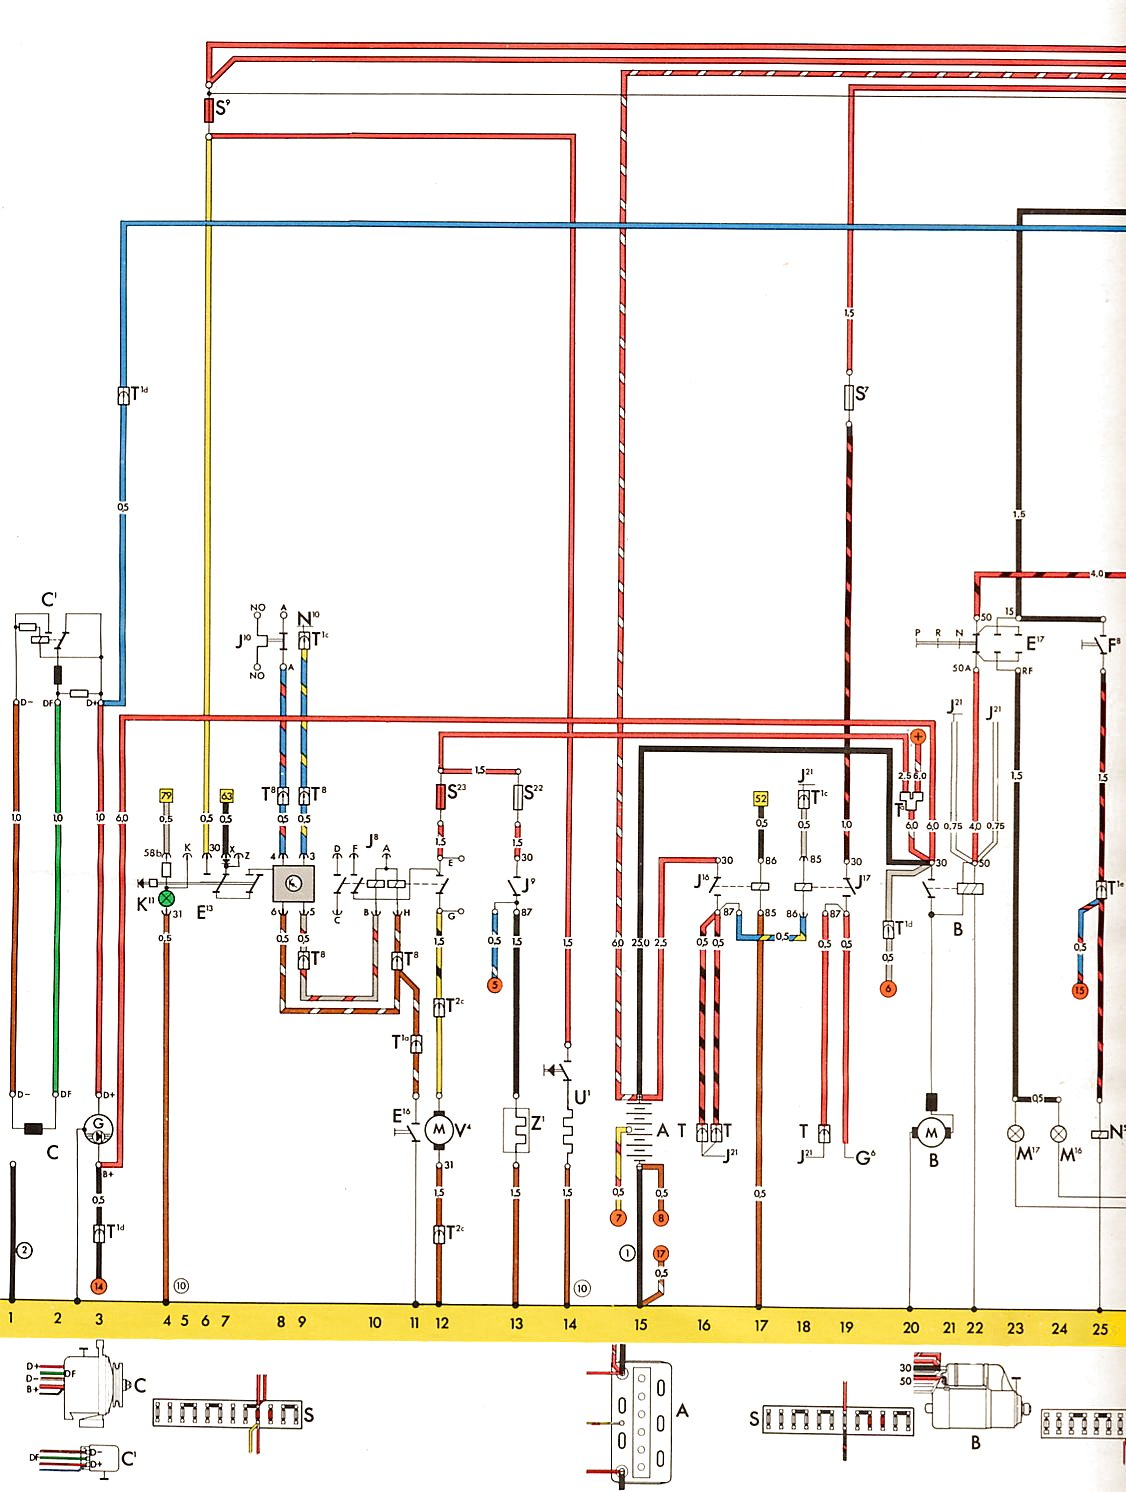 1970 vw type 2 wiring diagram 5 way switch multiple lights vintagebus usa from august 1973 1